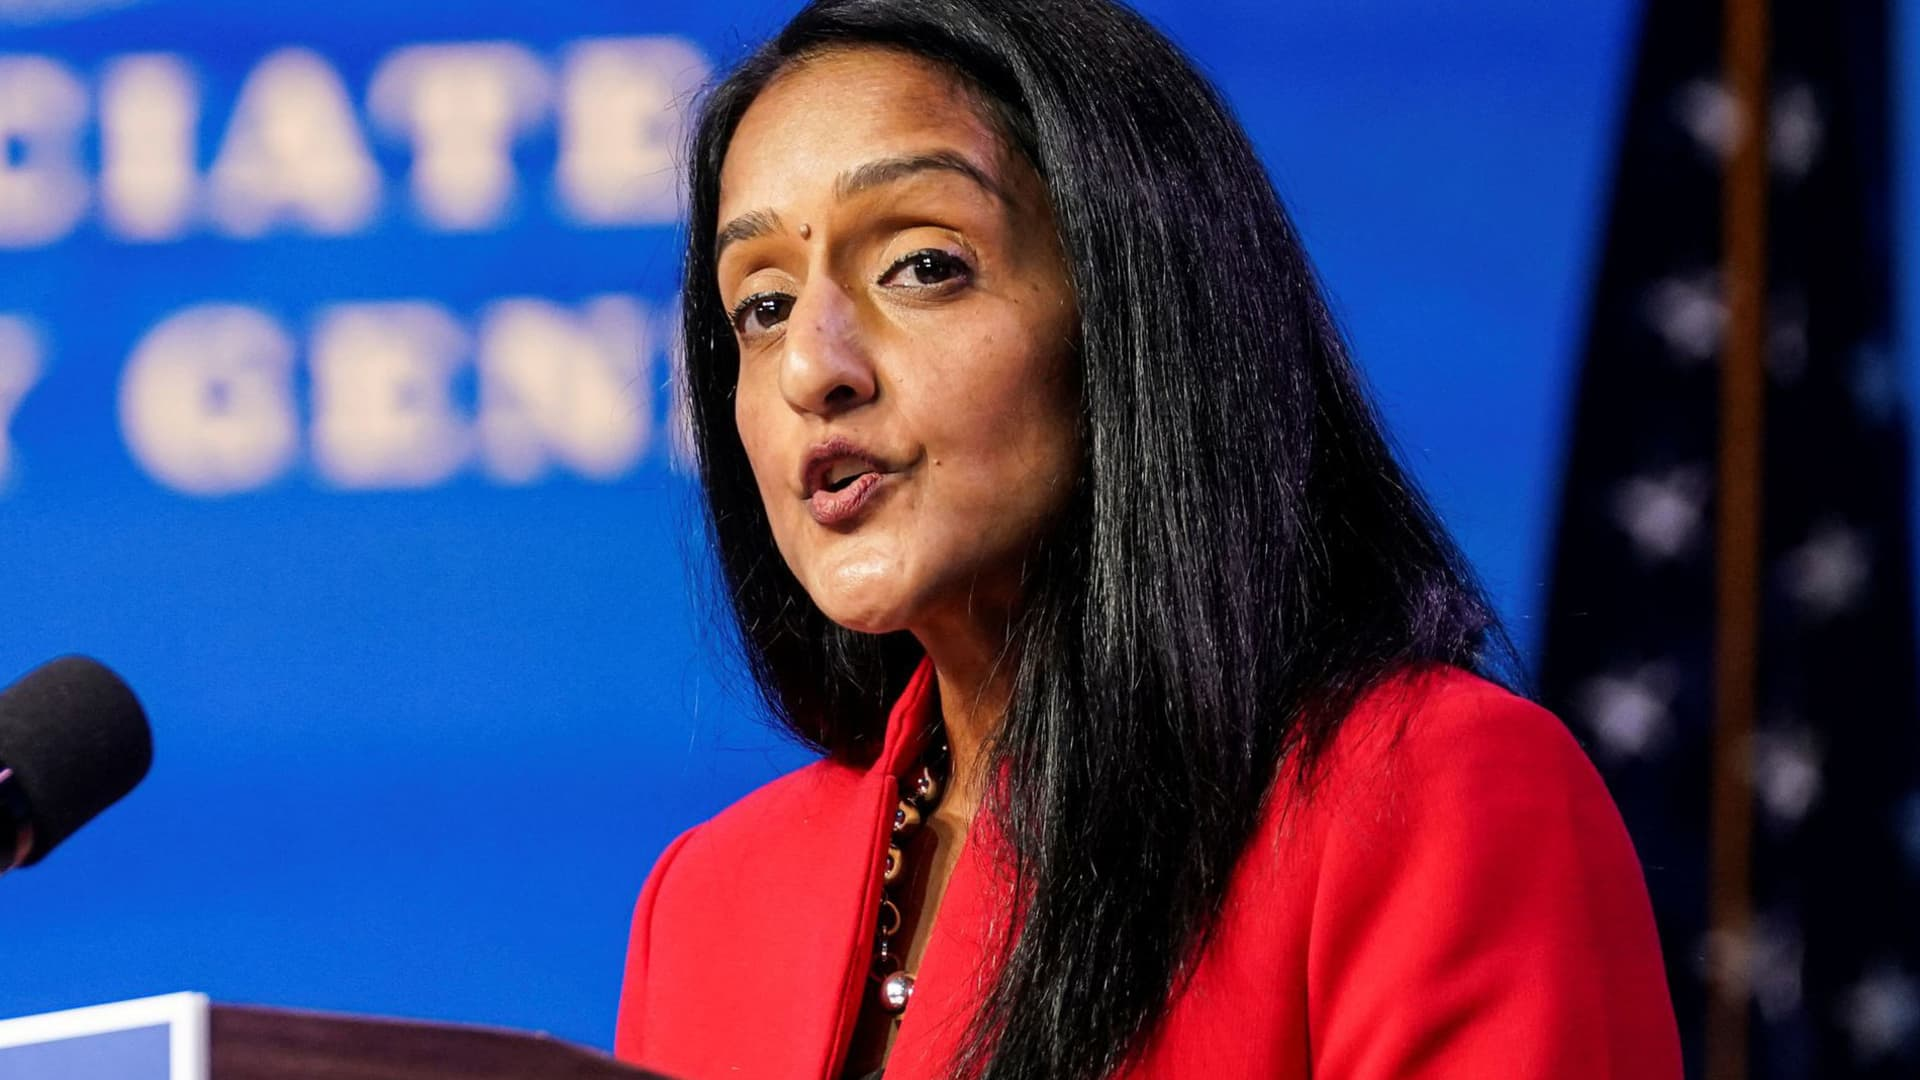 Vanita Gupta, U.S. President-elect Joe Biden's nominee to be associate attorney general, speaks as Biden announces his Justice Department nominees at his transition headquarters in Wilmington, Delaware, January 7, 2021.